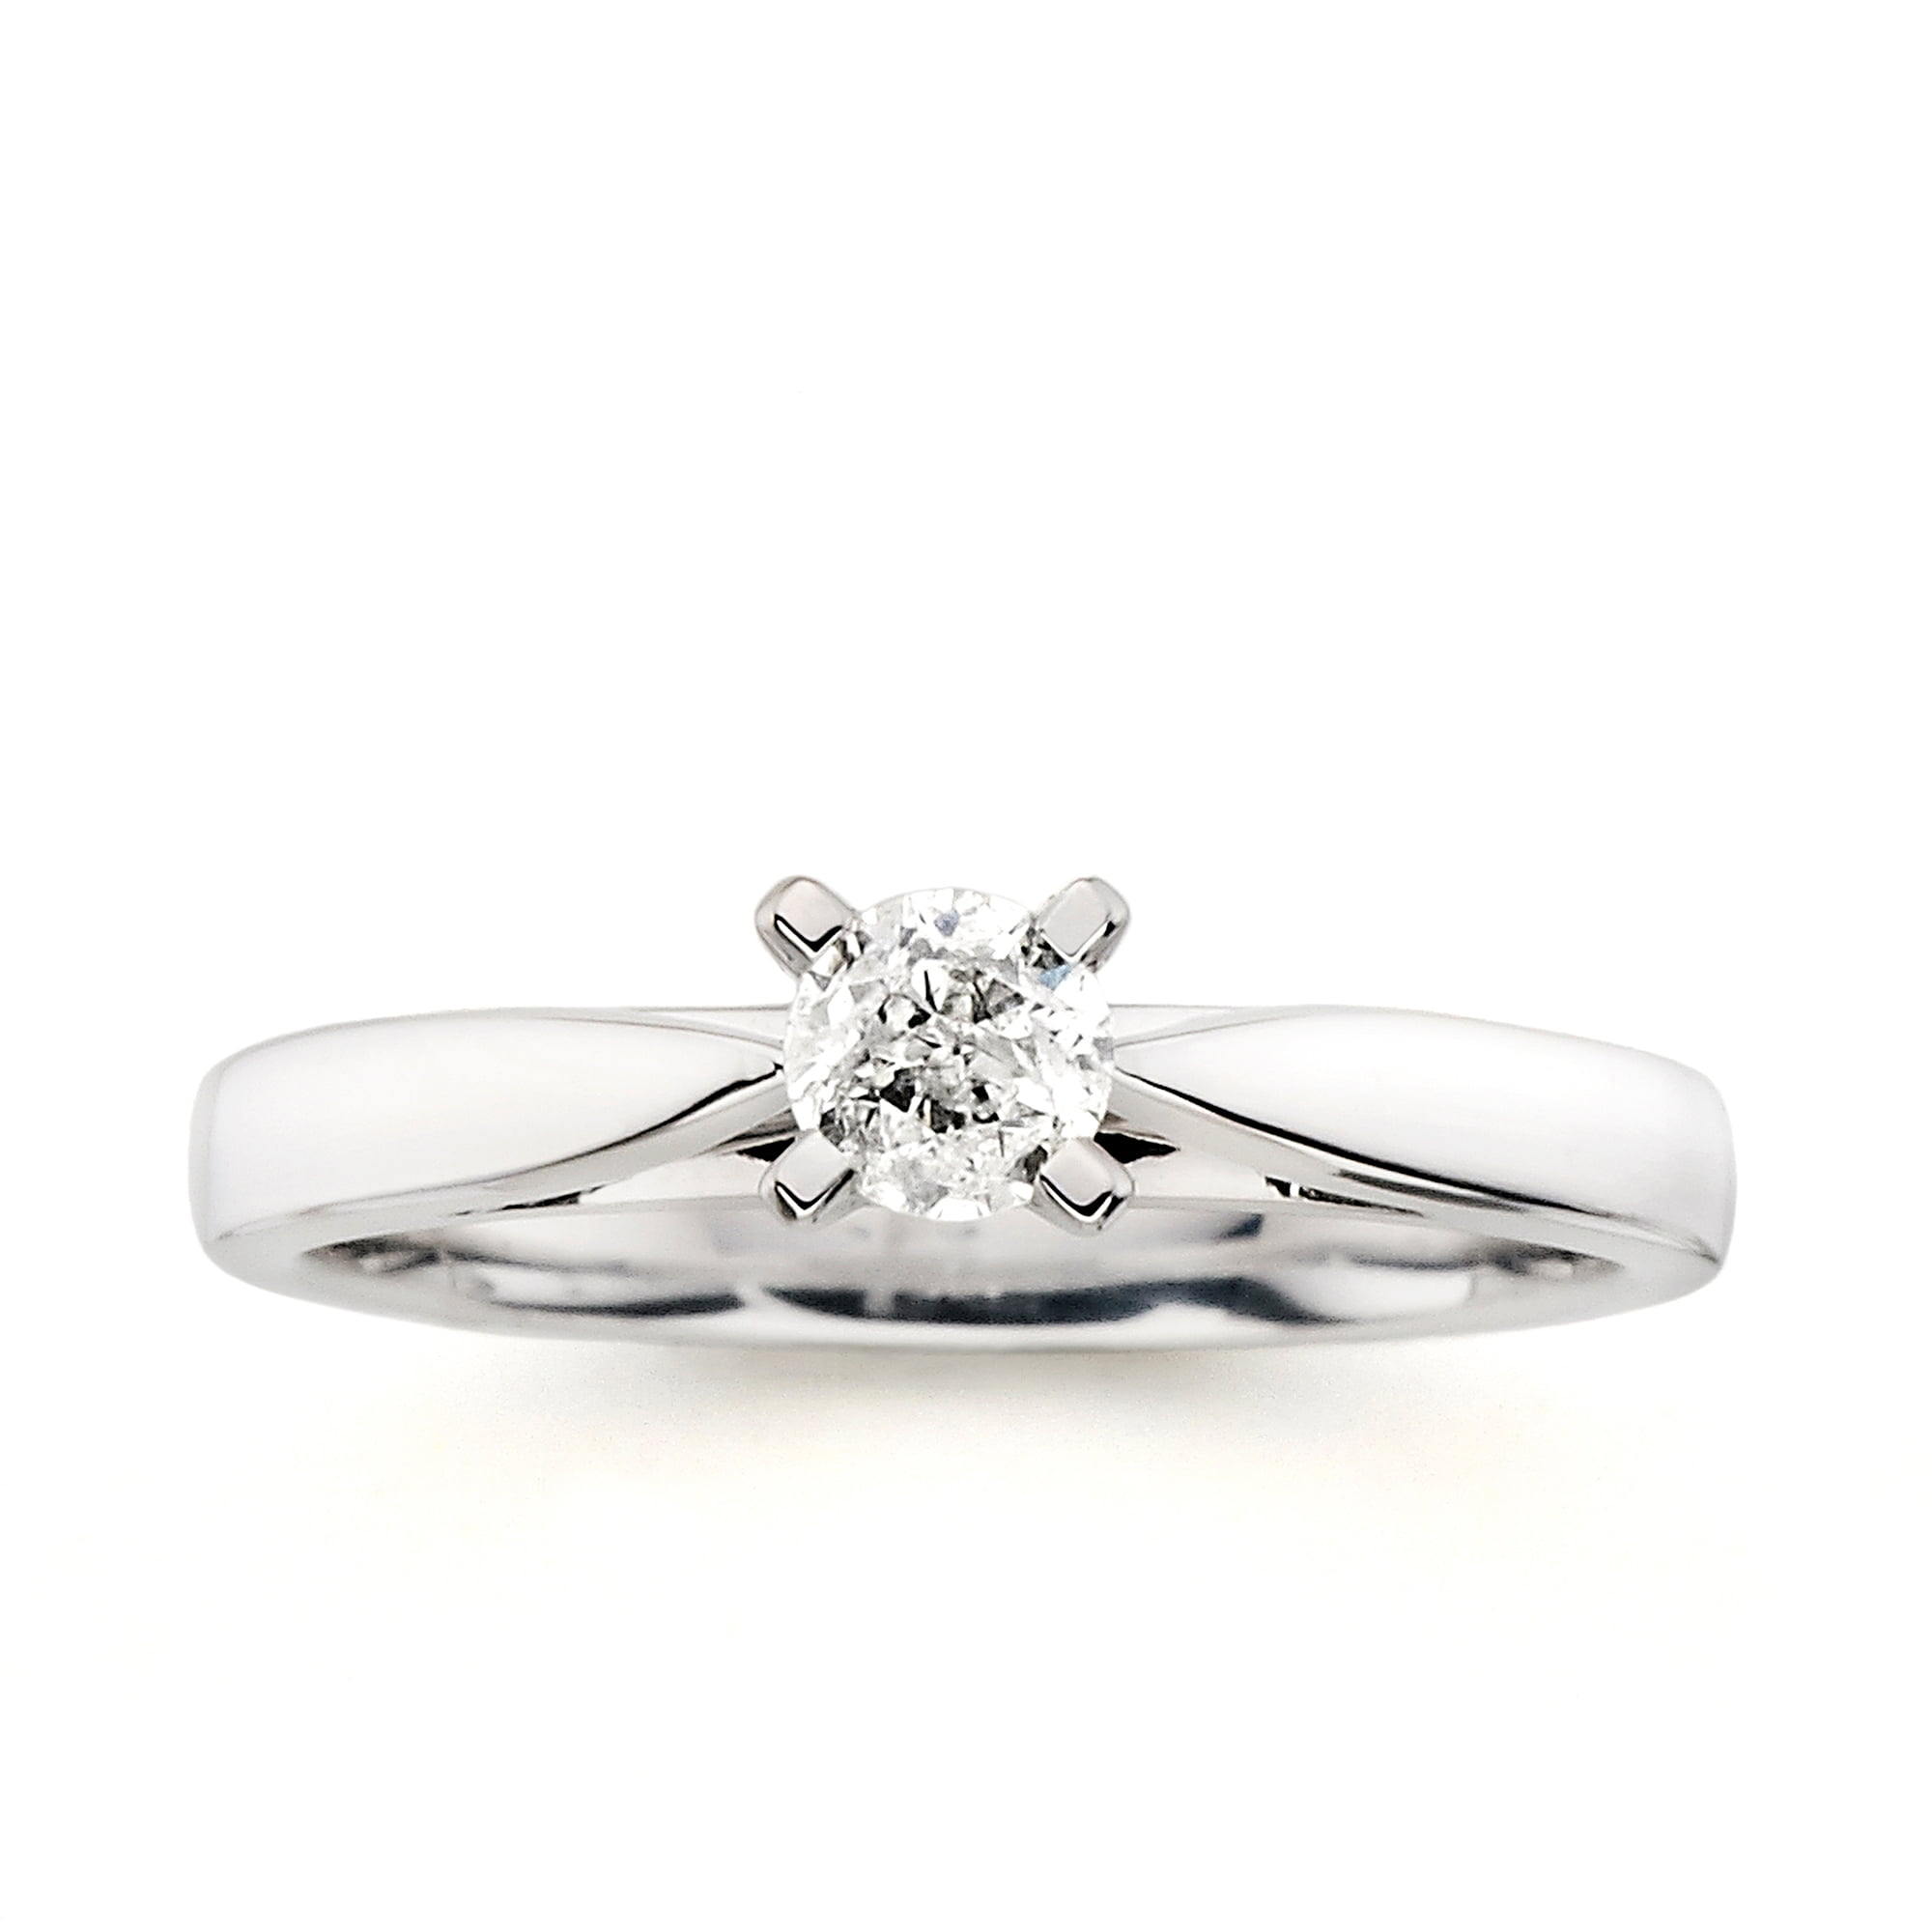 ring moiss engagement forever paired diamond camille moissanite solitaire mod one v hearts shank ps pave center rings pav side or supernova wedding products with arrows and a of band view